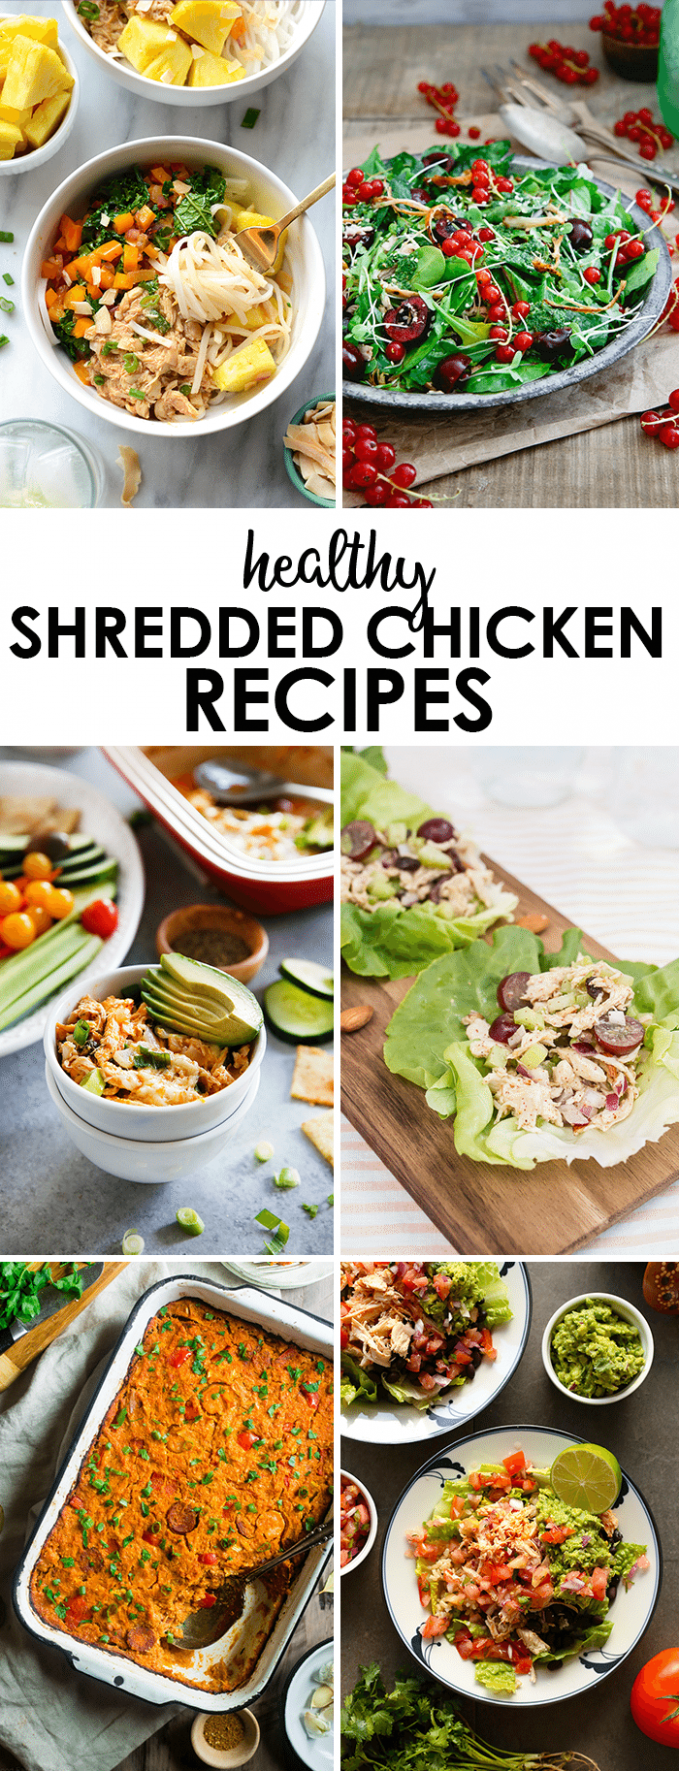 Buffalo Chicken Dip [VIDEO] - Lexi's Clean Kitchen - recipes for shredded chicken